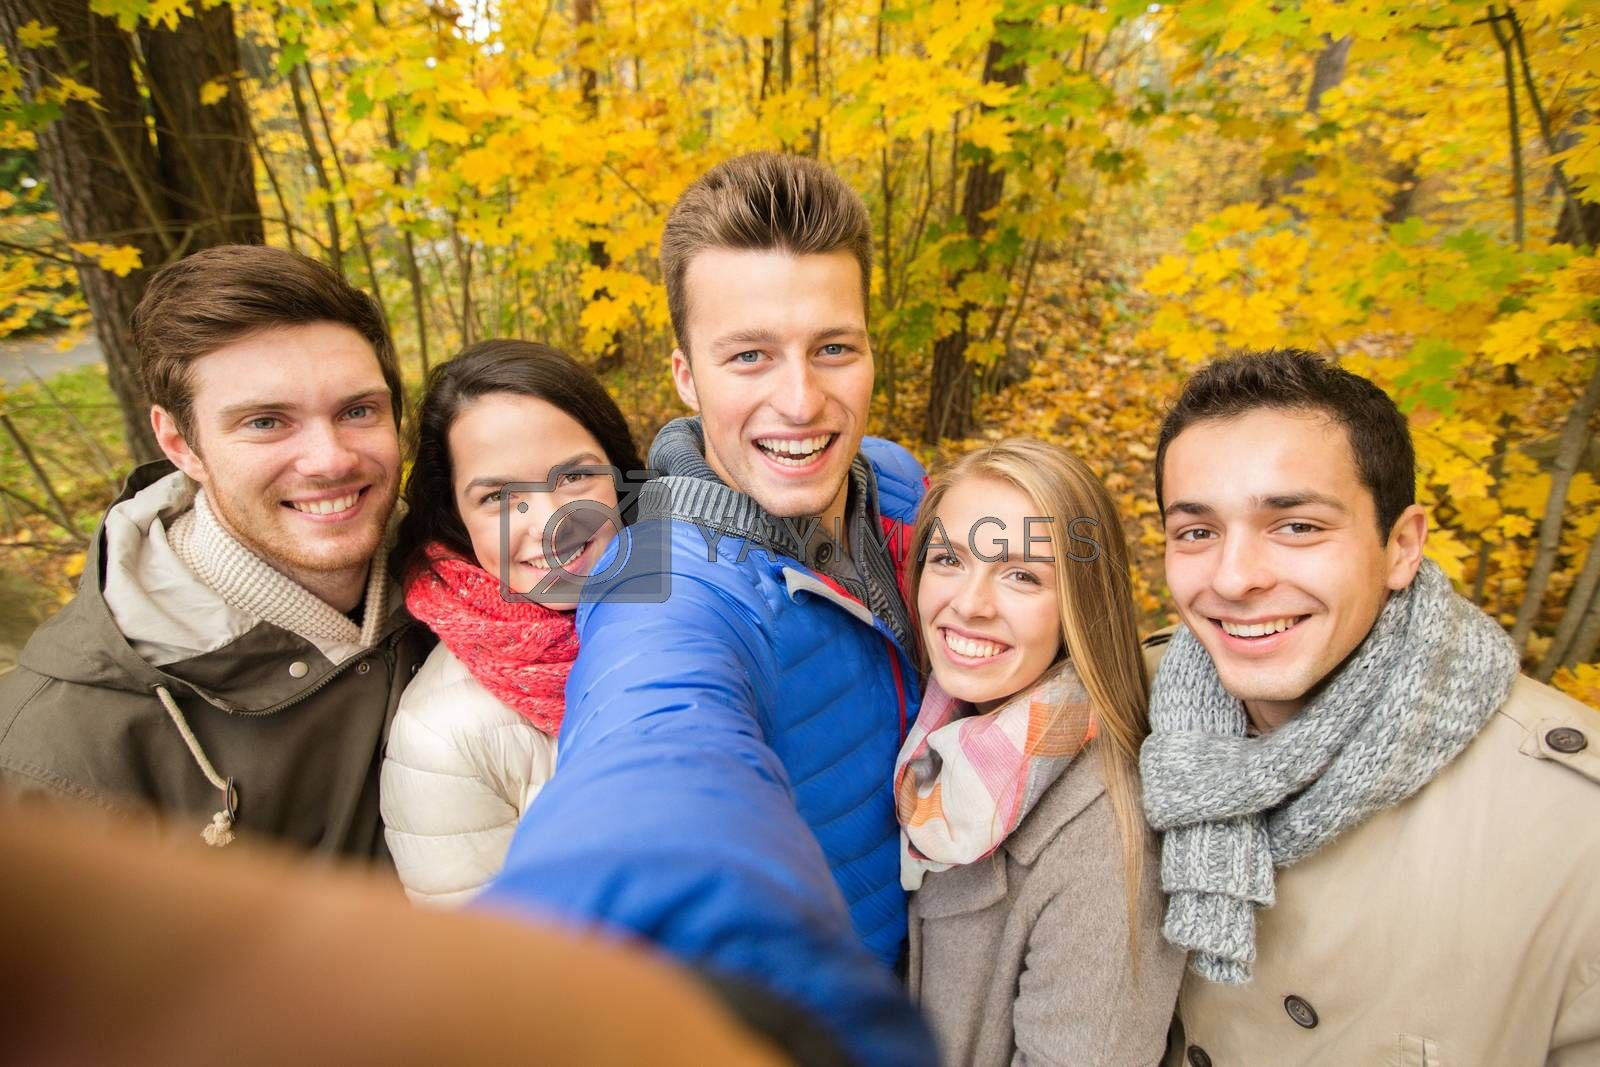 technology, season, friendship and people concept - group of smiling men and women taking selfie with smartphone or camera in autumn park